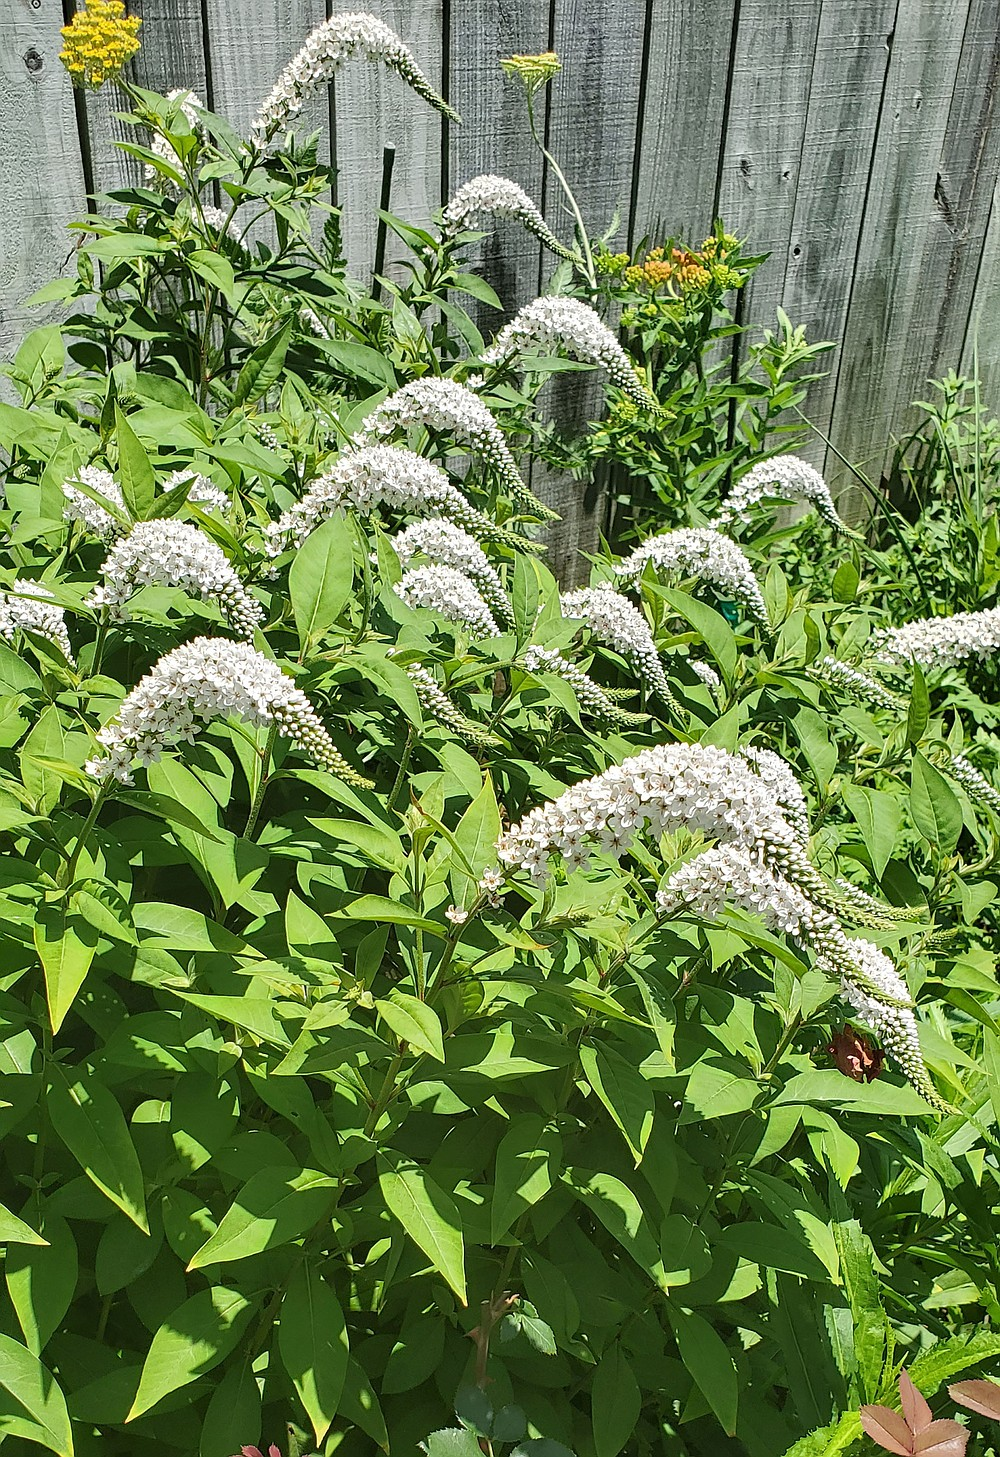 Gooseneck loosestrife (Lysimachia clethroides) spreads prolifically by rhizomes and will overrun a garden if not contained.  (Special to the Democrat-Gazette)